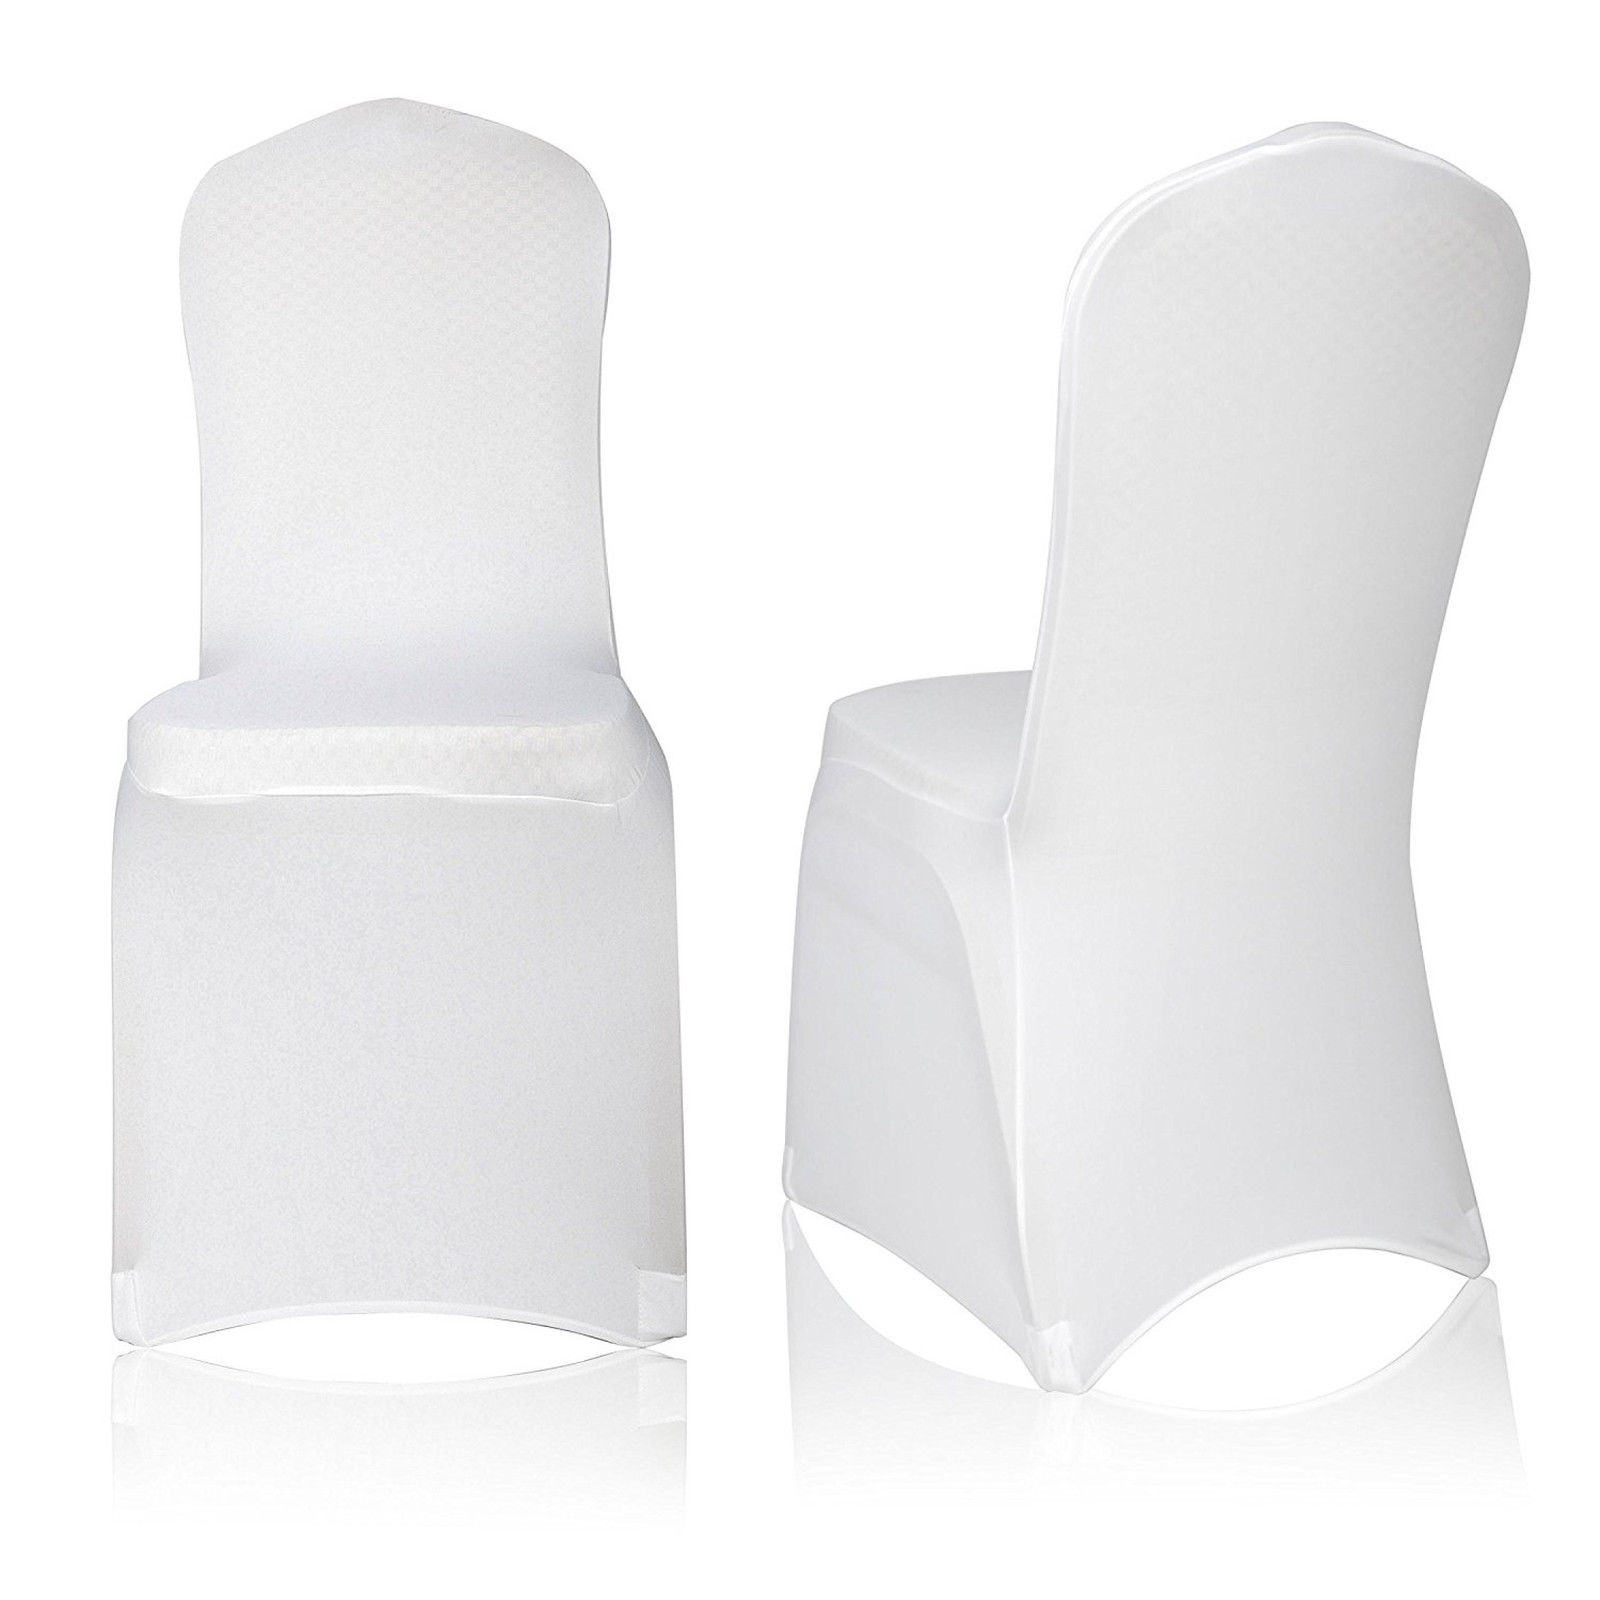 used banquet chair covers wholesale coffee table chairs 1 50 100pcs spandex lycra wedding